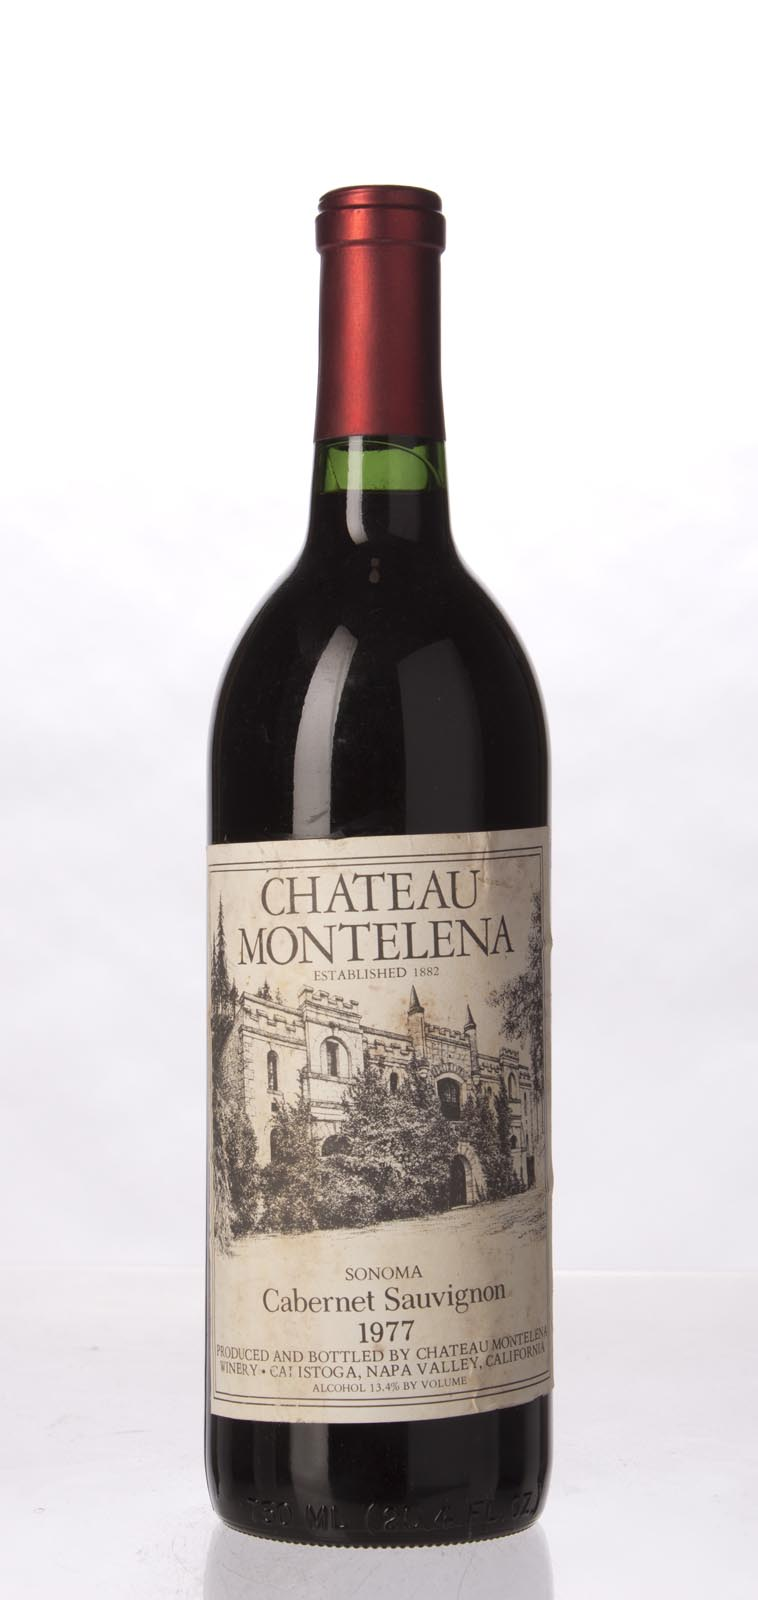 Chateau Montelena Cabernet Sauvignon Sonoma 1977, 750mL (WA91) from The BPW - Merchants of rare and fine wines.